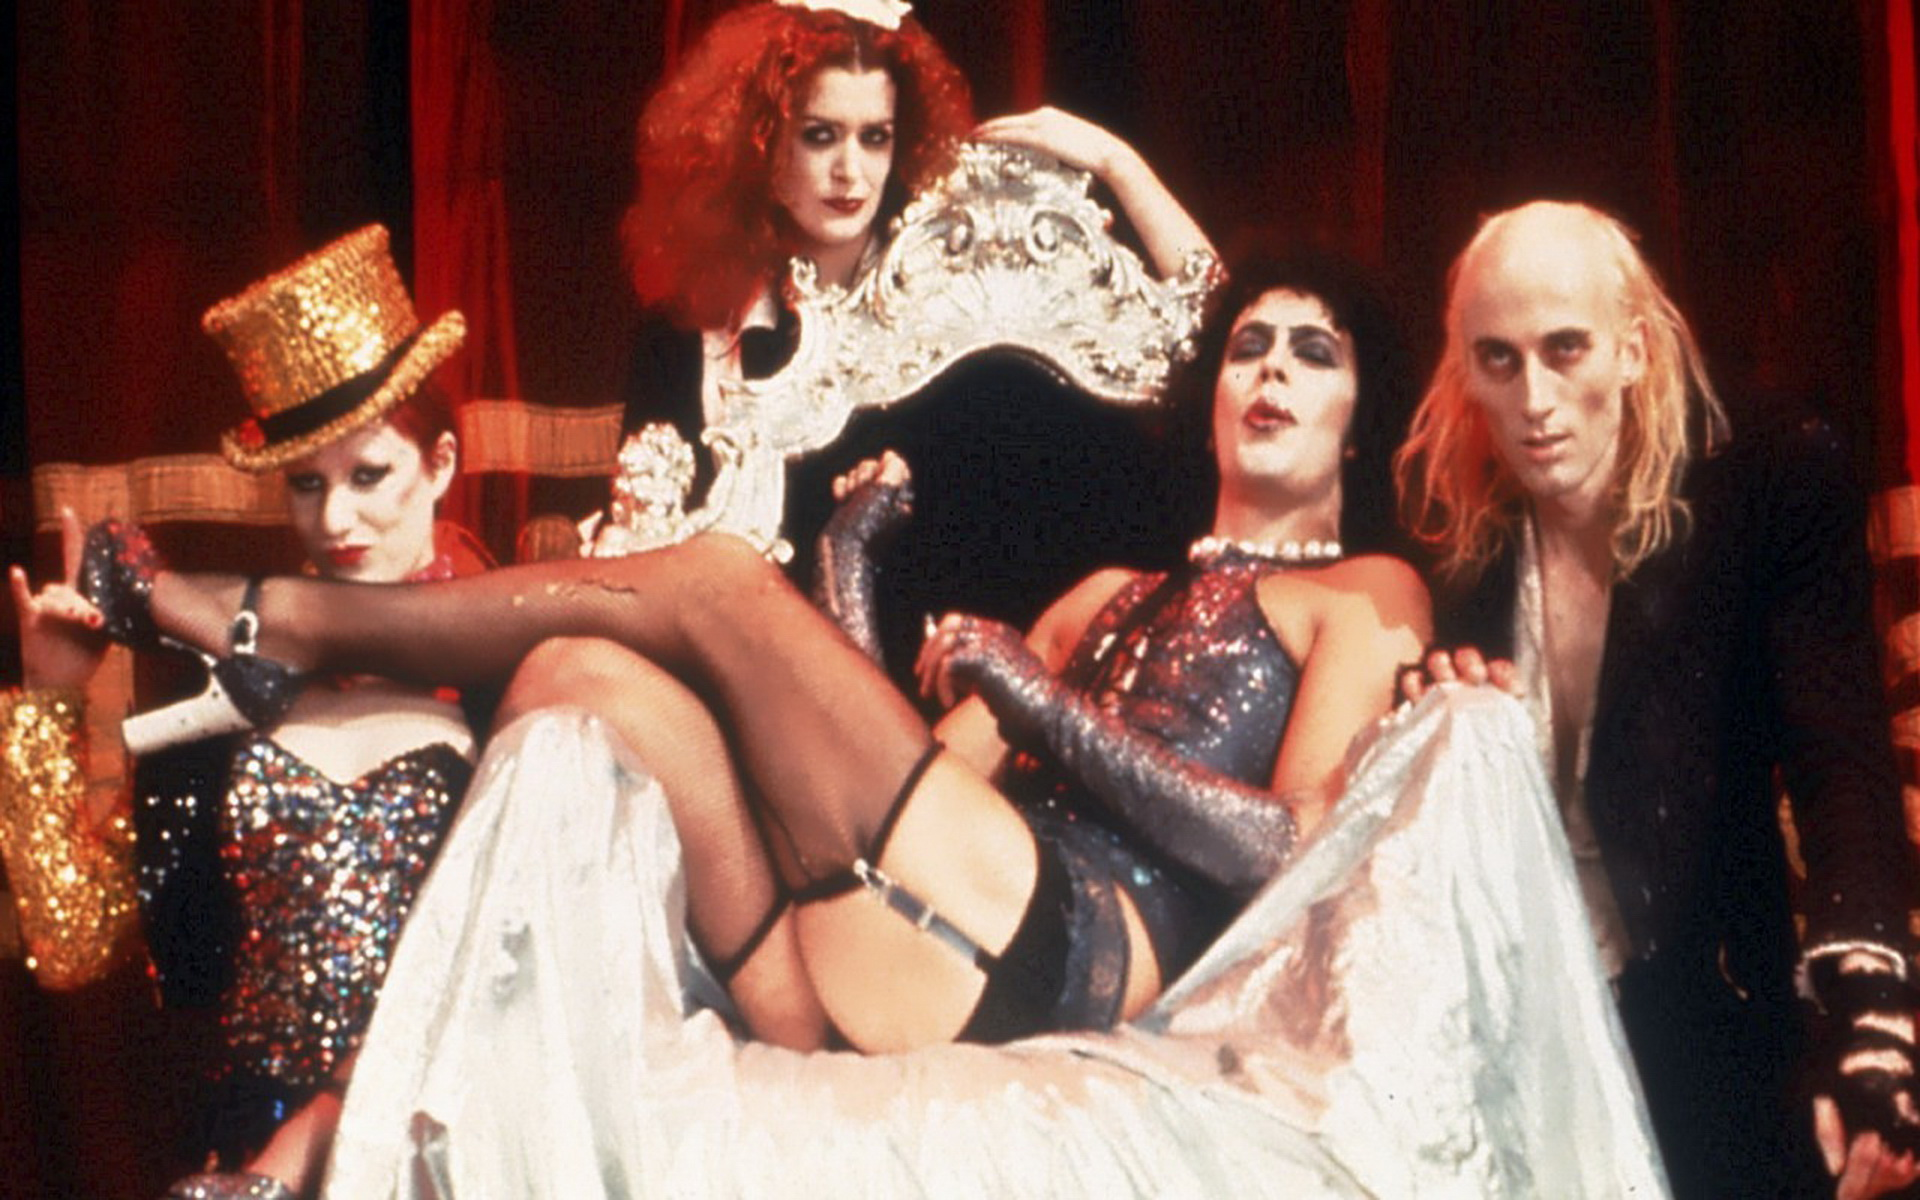 2013-03-25-rocky_horror_picture_show_cast